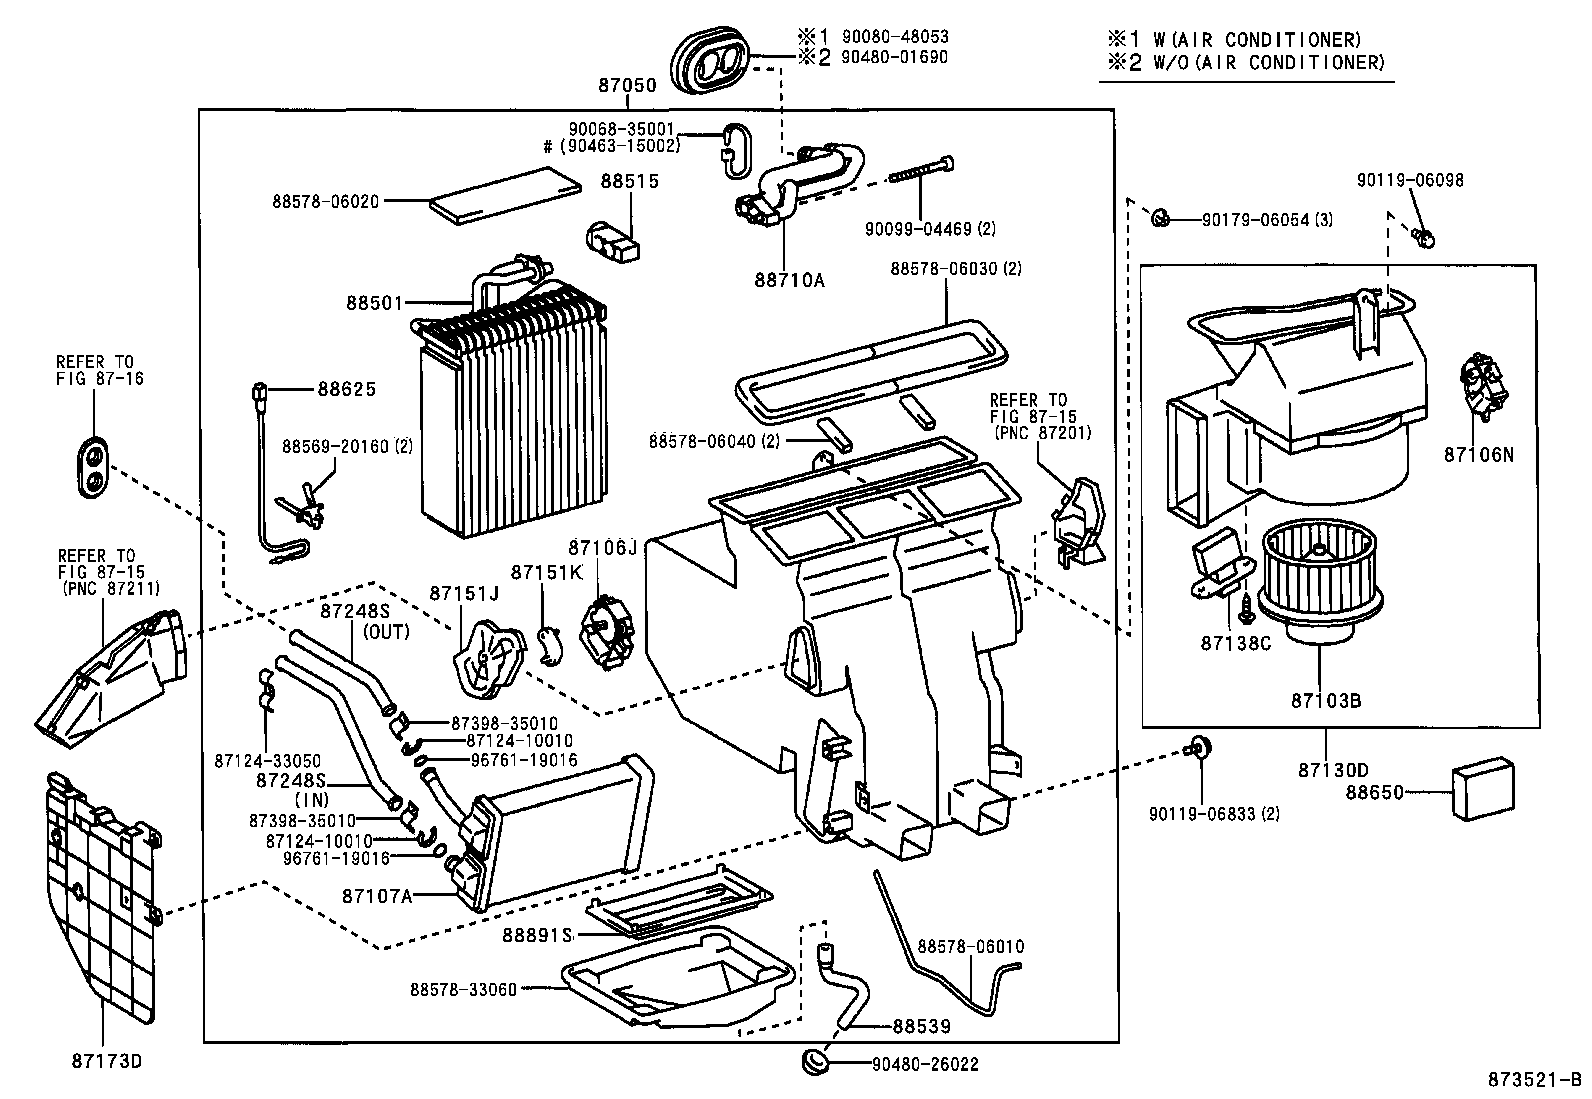 Toyota Camry Ac Parts Diagram. Toyota. Auto Parts Catalog